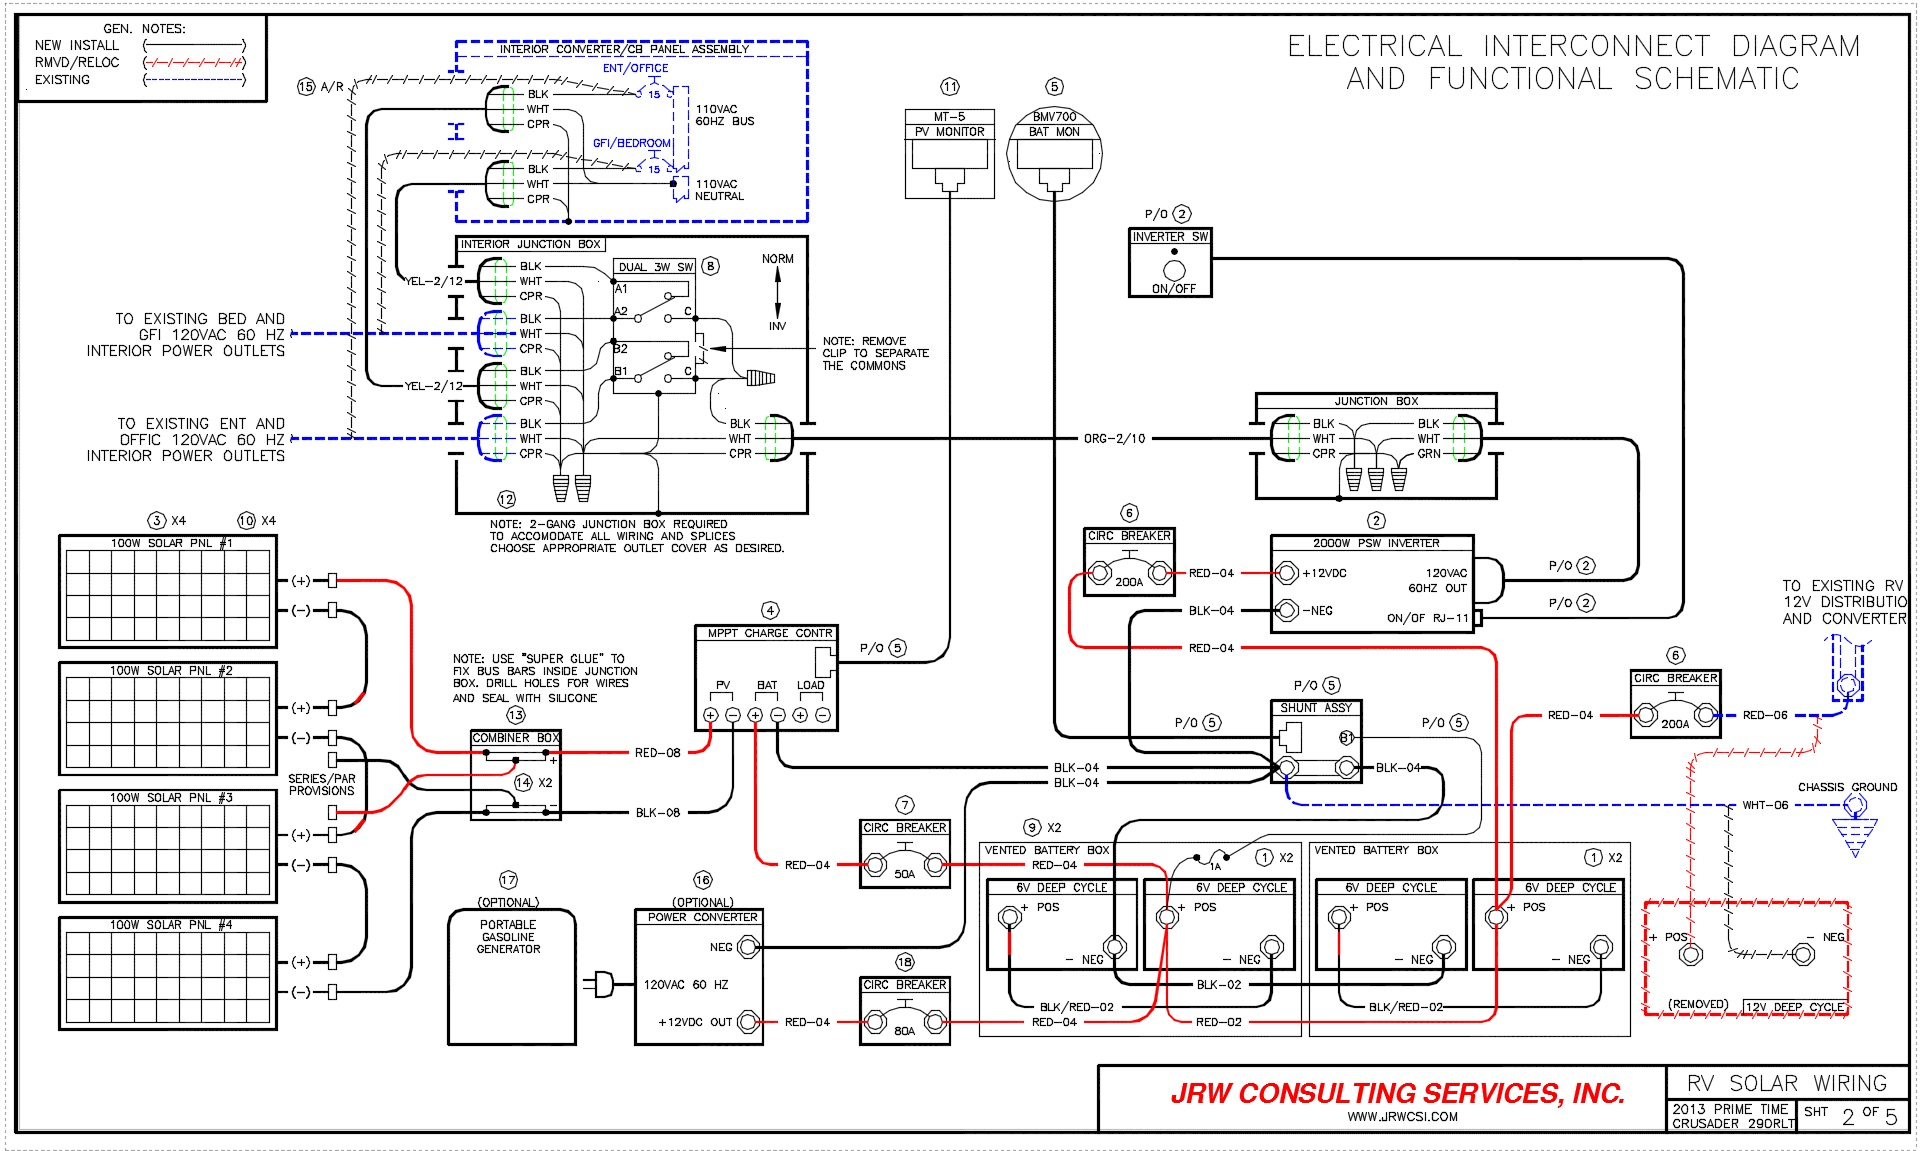 solar panel wiring diagram 2009 silverado rv power upgrade live breathe move